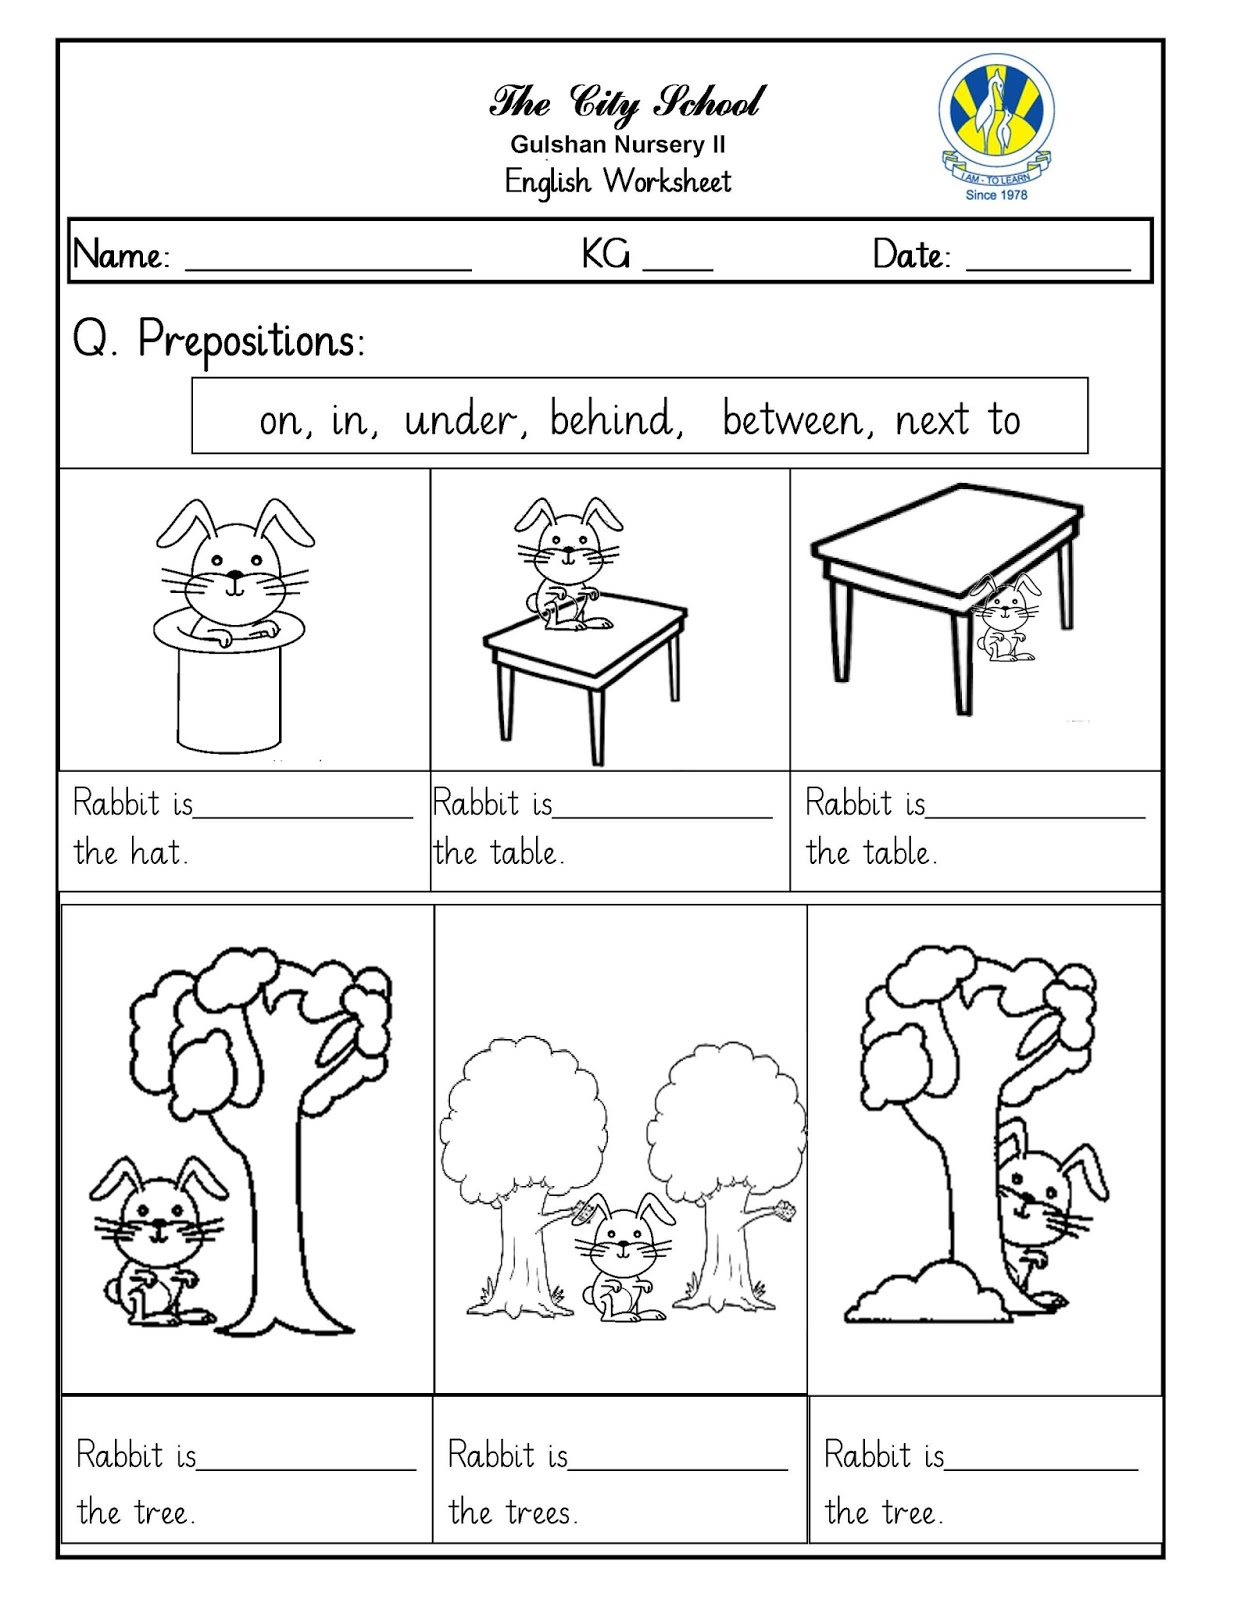 in on under worksheets for kindergarten letter worksheets in addition On Under Worksheets together with  furthermore Prepositions Worksheets   Itsy Bitsy Fun moreover ESL Kids Worksheets Home and Prepositions Worksheets as well Where is it  in on under worksheet   Free ESL printable worksheets likewise Prepositions in on under worksheets for kids together with In On Under Worksheets For Kindergarten Printable Worksheets as well  additionally  also in on under worksheets for kindergarten esl worksheets and as well Math And English Worksheets Choice Image   kindergarten pre in addition Prepositions of Place In On Under Worksheet   Turtle Diary besides  in addition in on under over worksheets likewise Prepositions In On Under Worksheet   Turtle Diary. on in on under by worksheets